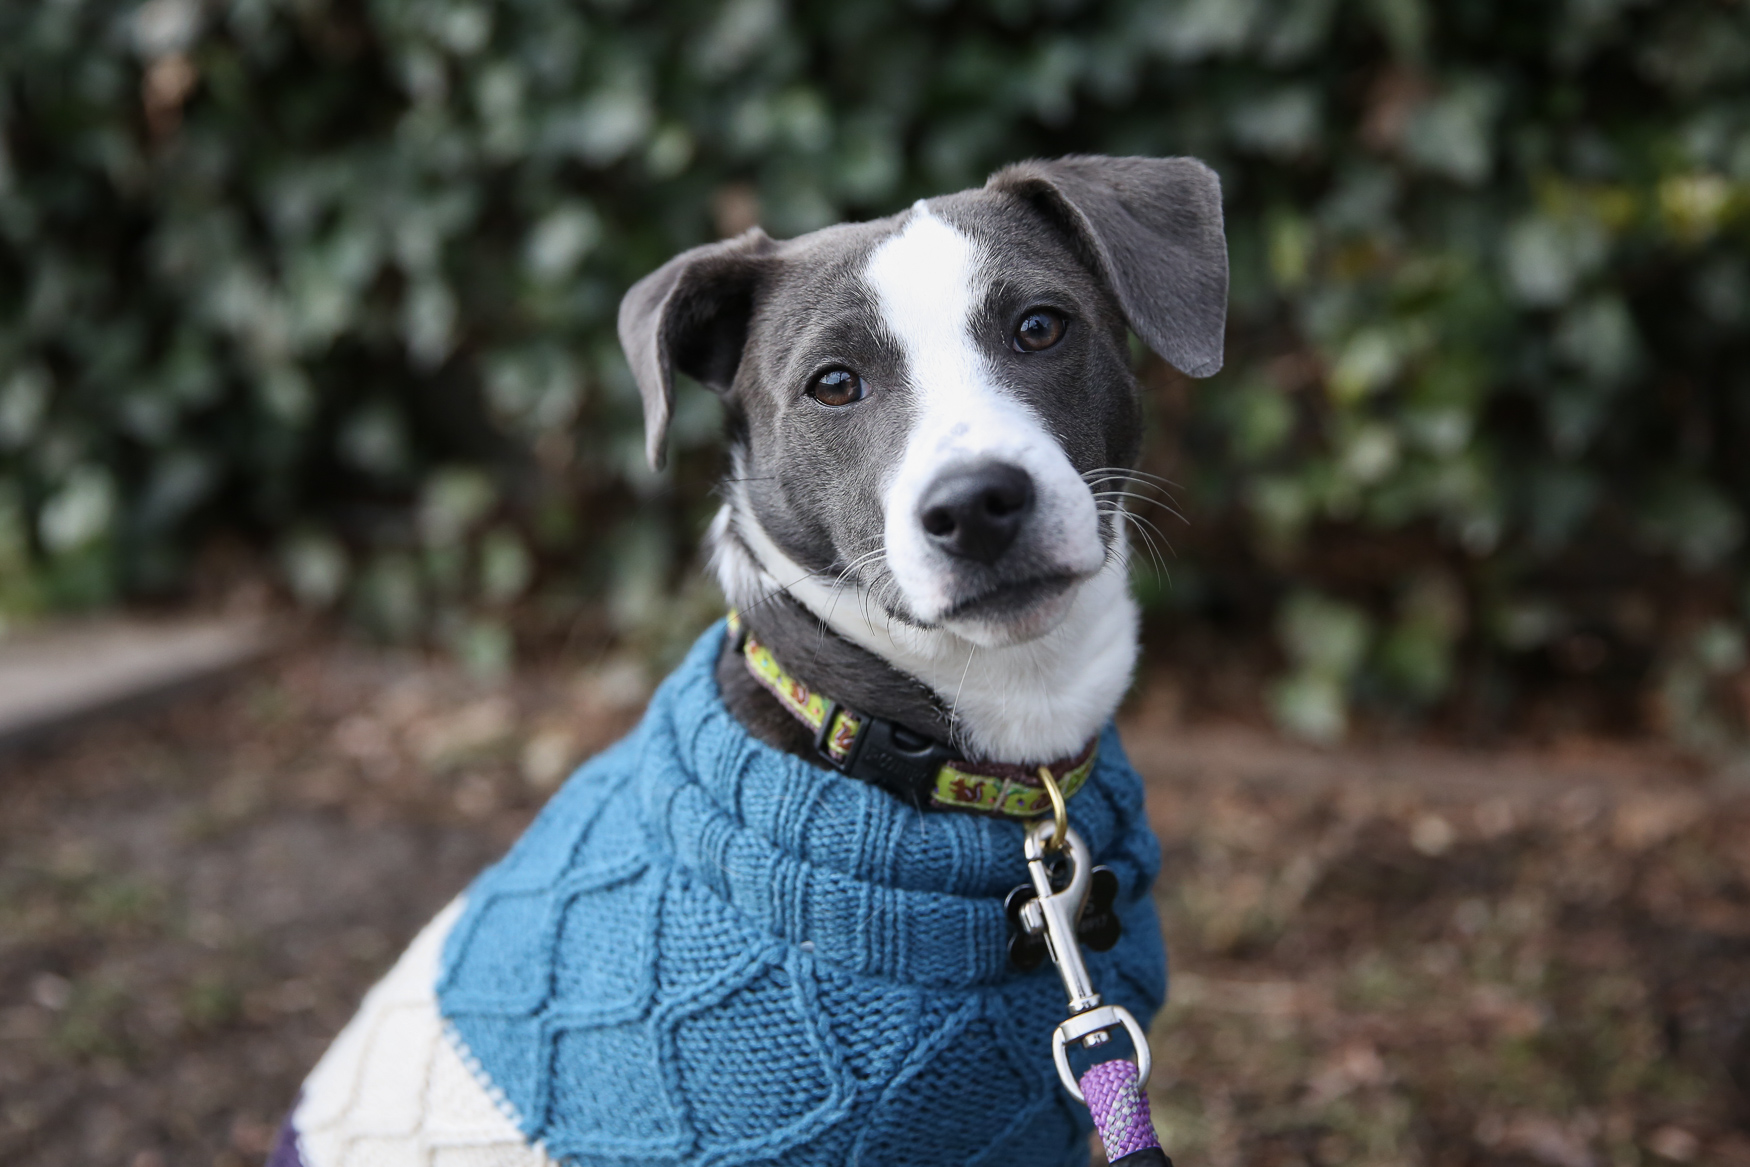 This week's DC RUFFined star is Millie, a 6-month-old Feist who is living her best life in D.C. Millie was adopted from{ } Wolf Trap Animal Rescue in October, and since then she's been enjoying watching Caps games at The Brig, cuddling and making friends with other dogs. Millie also loves toys, peanut butter and the show Peppa Pig, but she's less enthusiastic about being alone, the cold and baths. Her special talents include standing on her hind legs and playing fetch with two balls. If you're interested in having your pup featured, drop us a line at aandrade@dcrefined.com (Amanda Andrade-Rhoades/DC Refined)